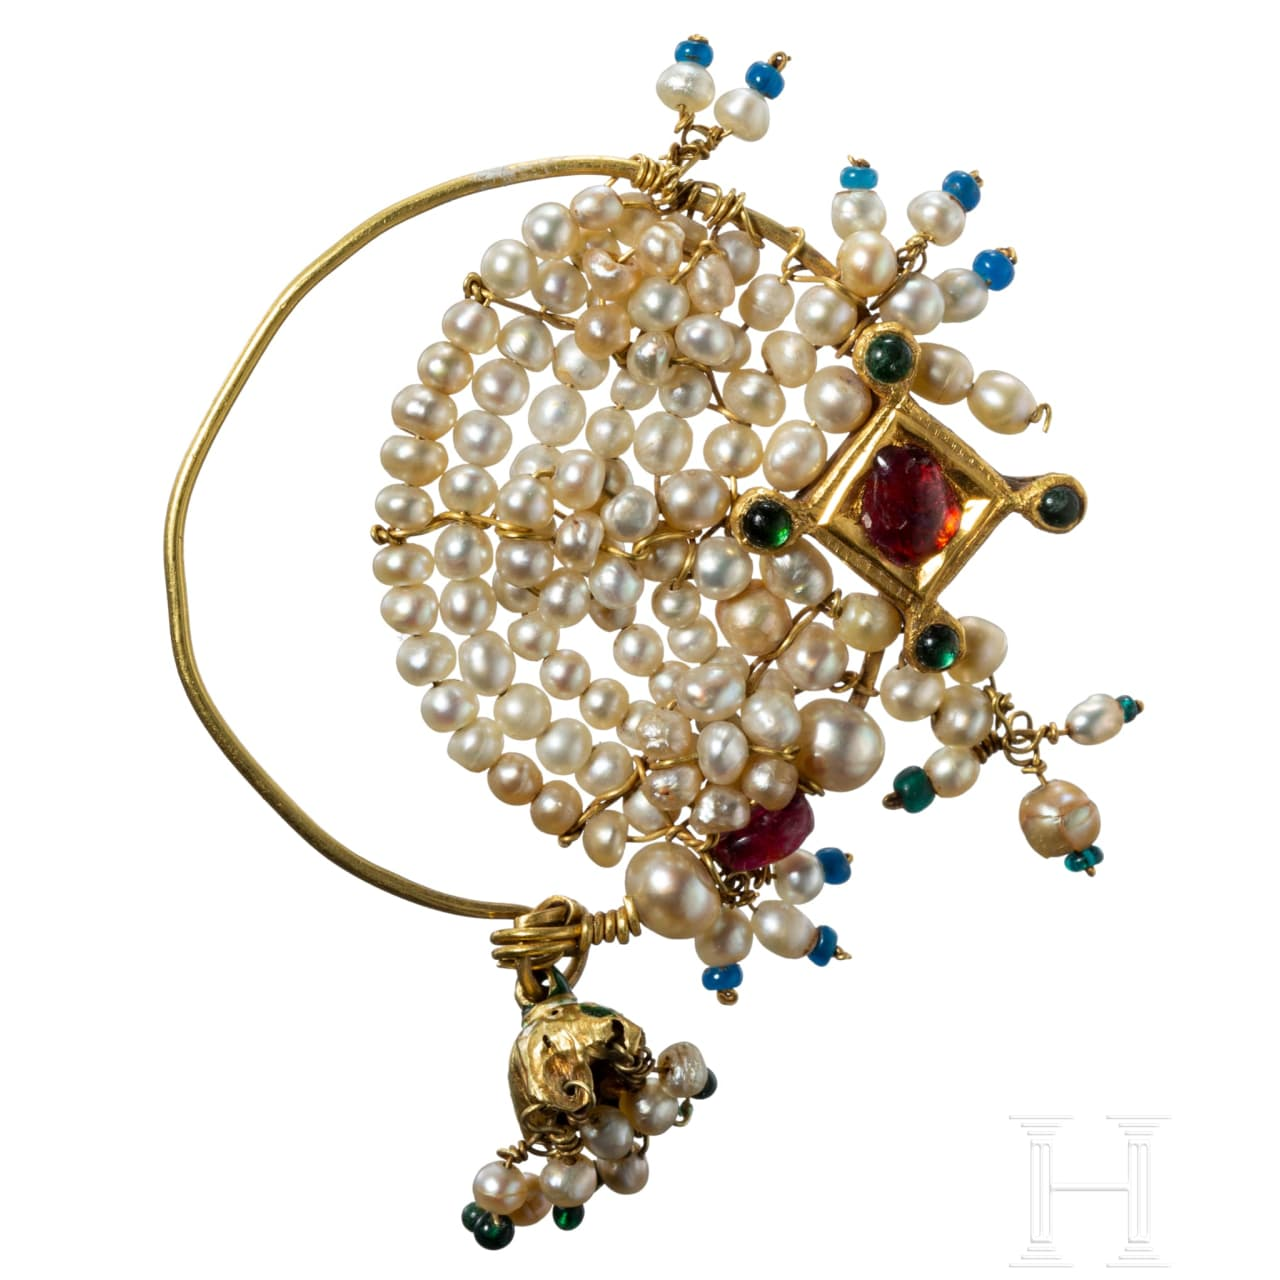 An Indian gold earring set with pearls and rubies, 18th/19th century